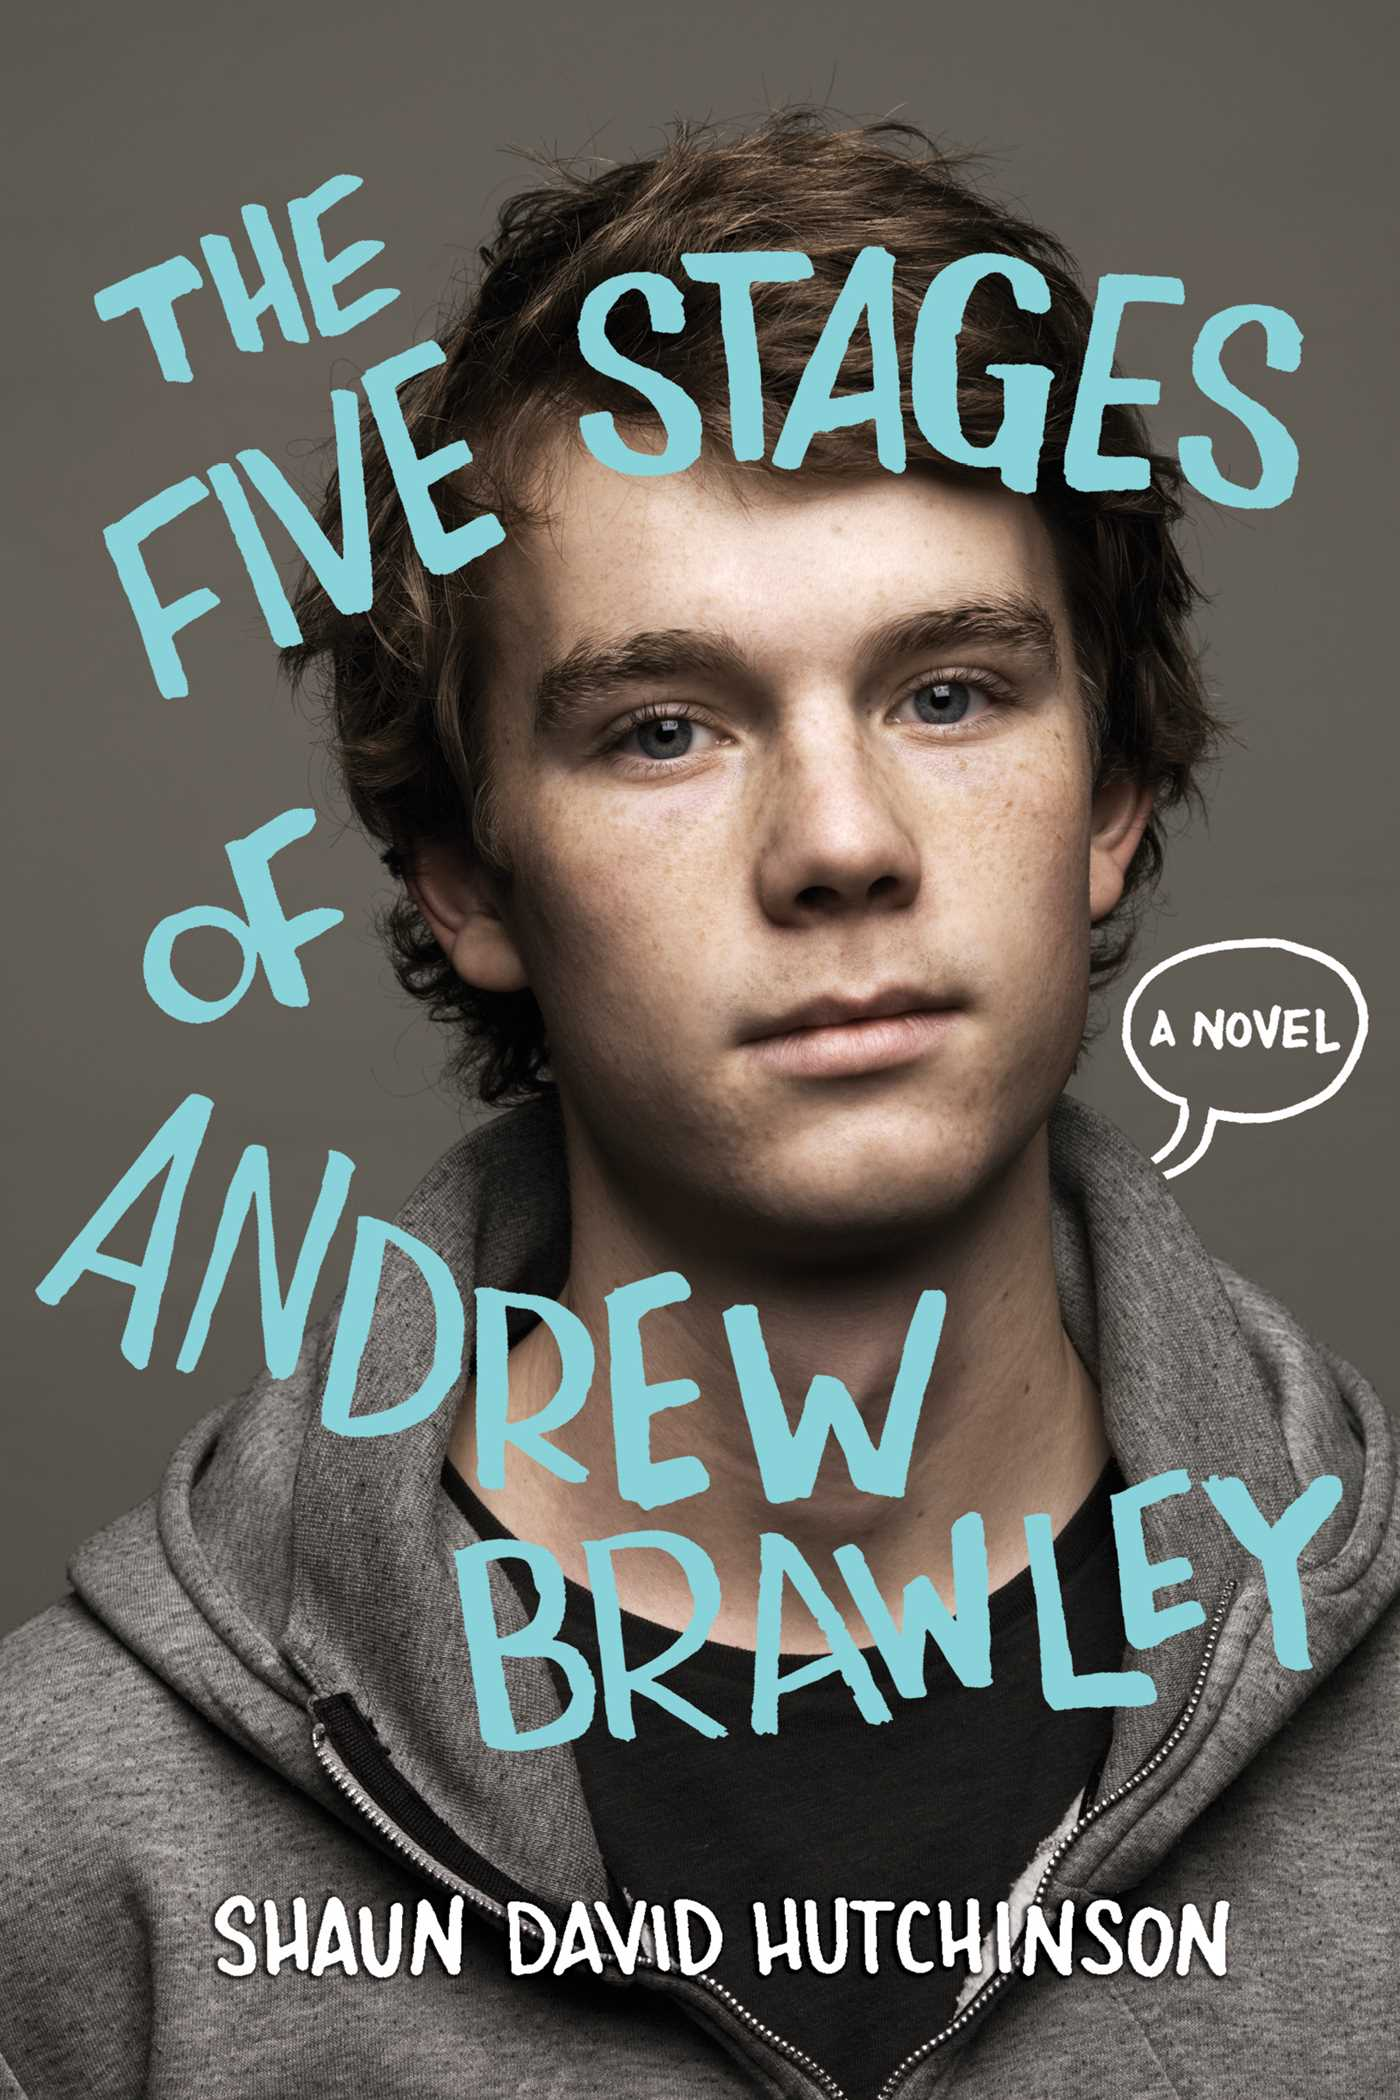 Five-stages-of-andrew-brawley-9781481403108_hr